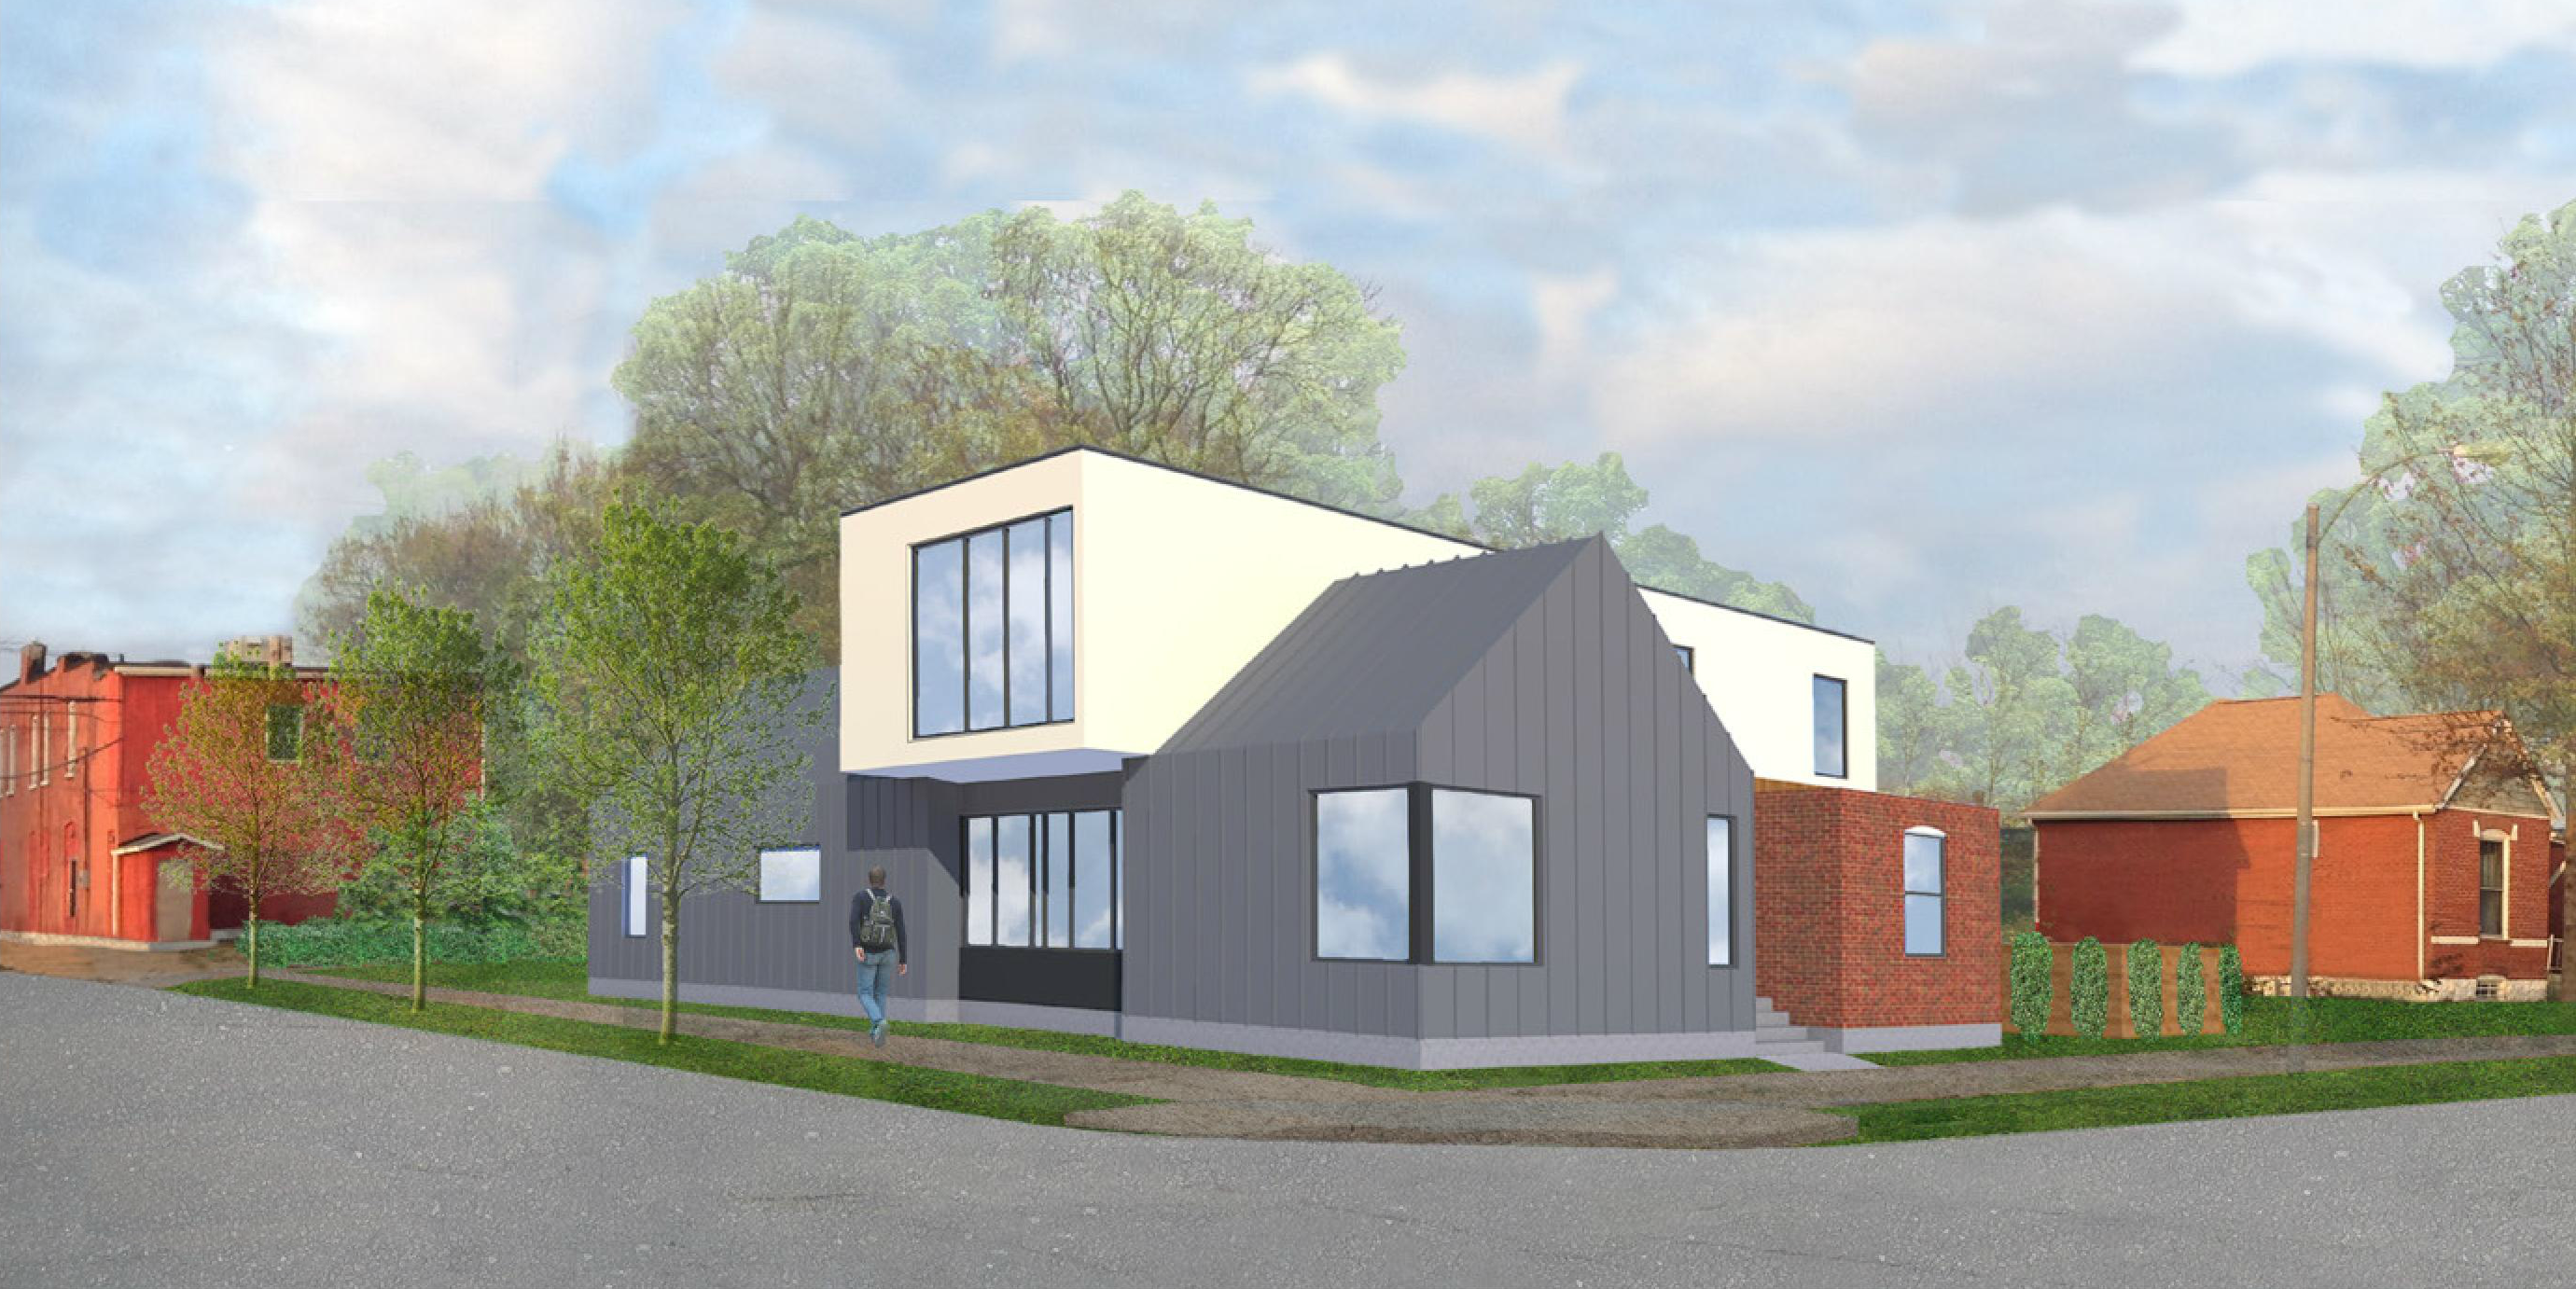 Half Million Dollar Custom Home by UIC Coming to The Grove